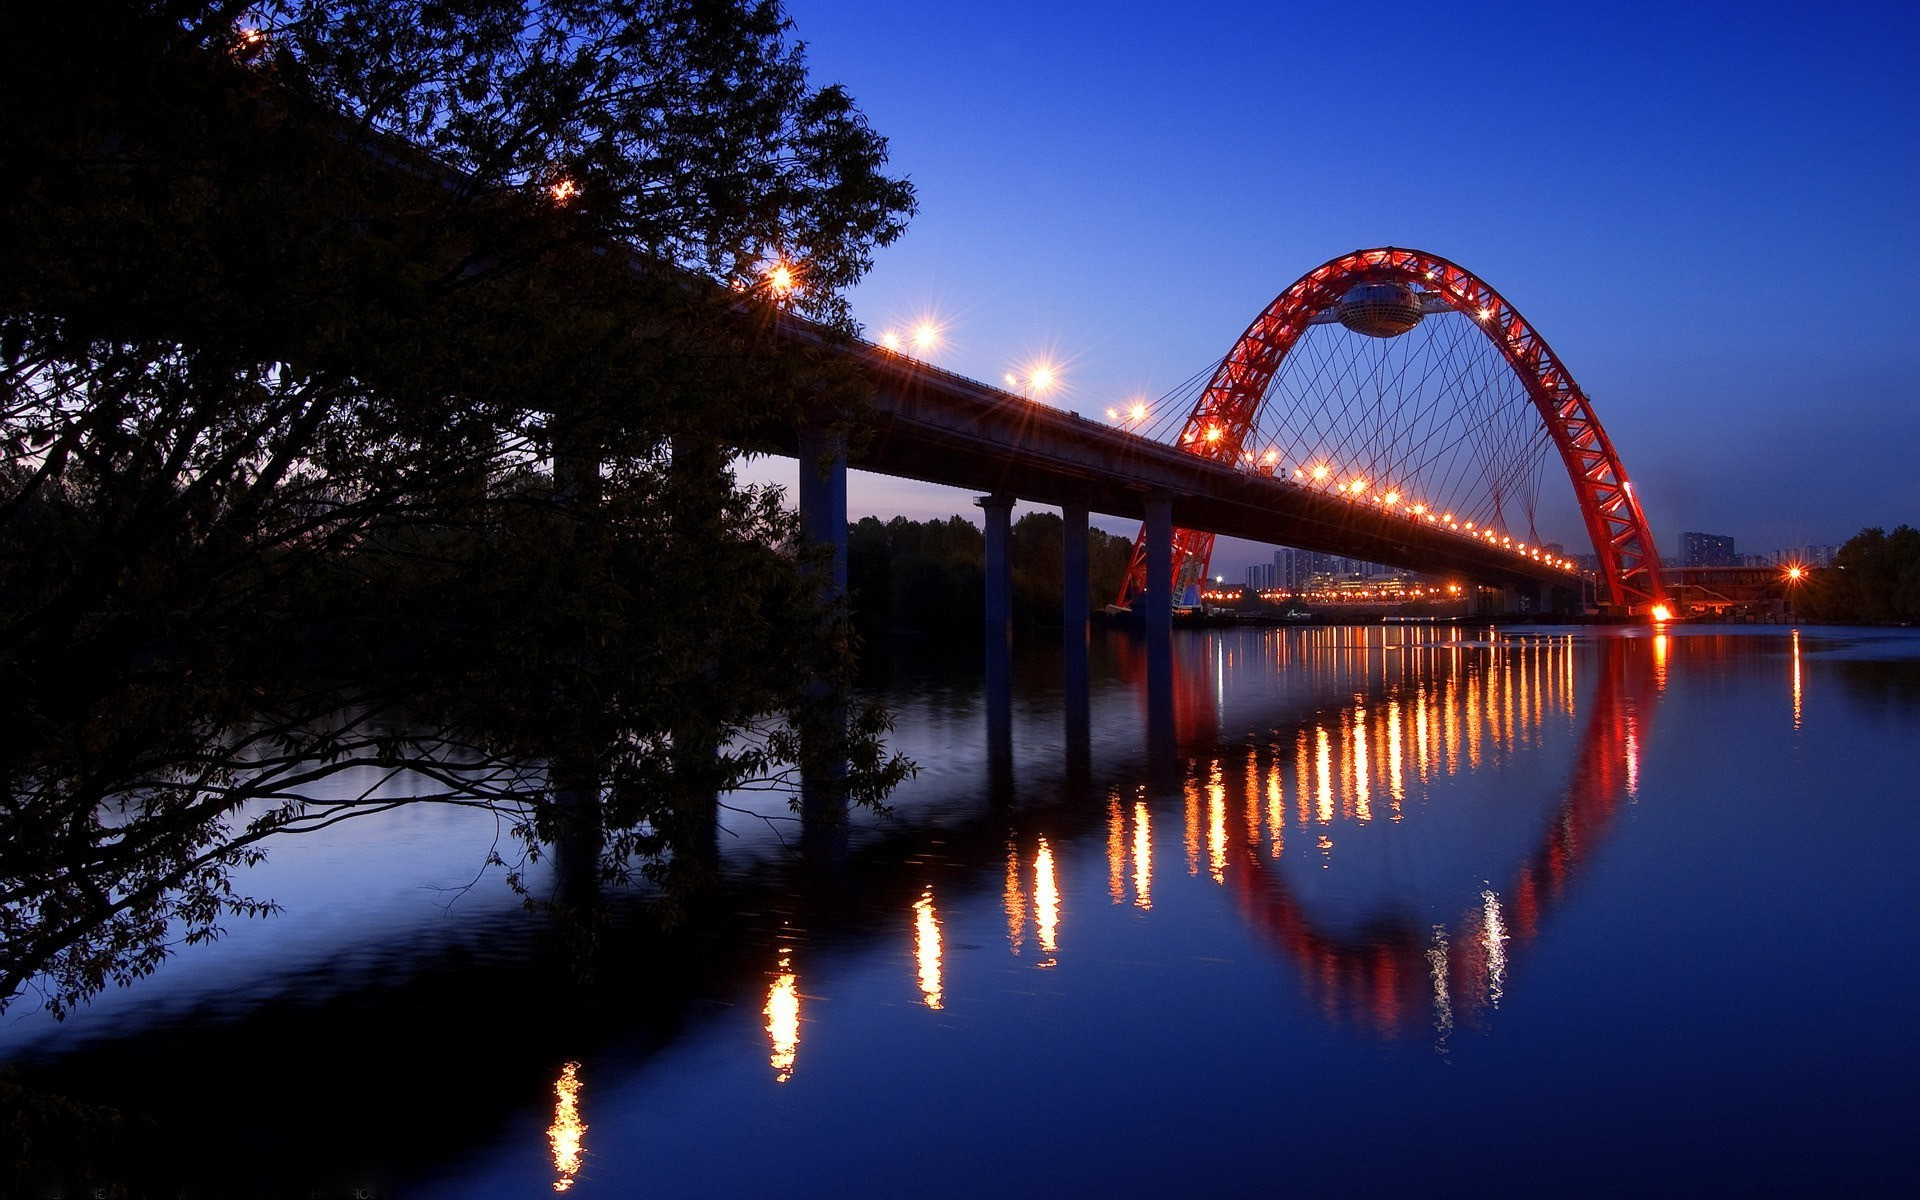 The bridge was lit with evening lights in Moscow